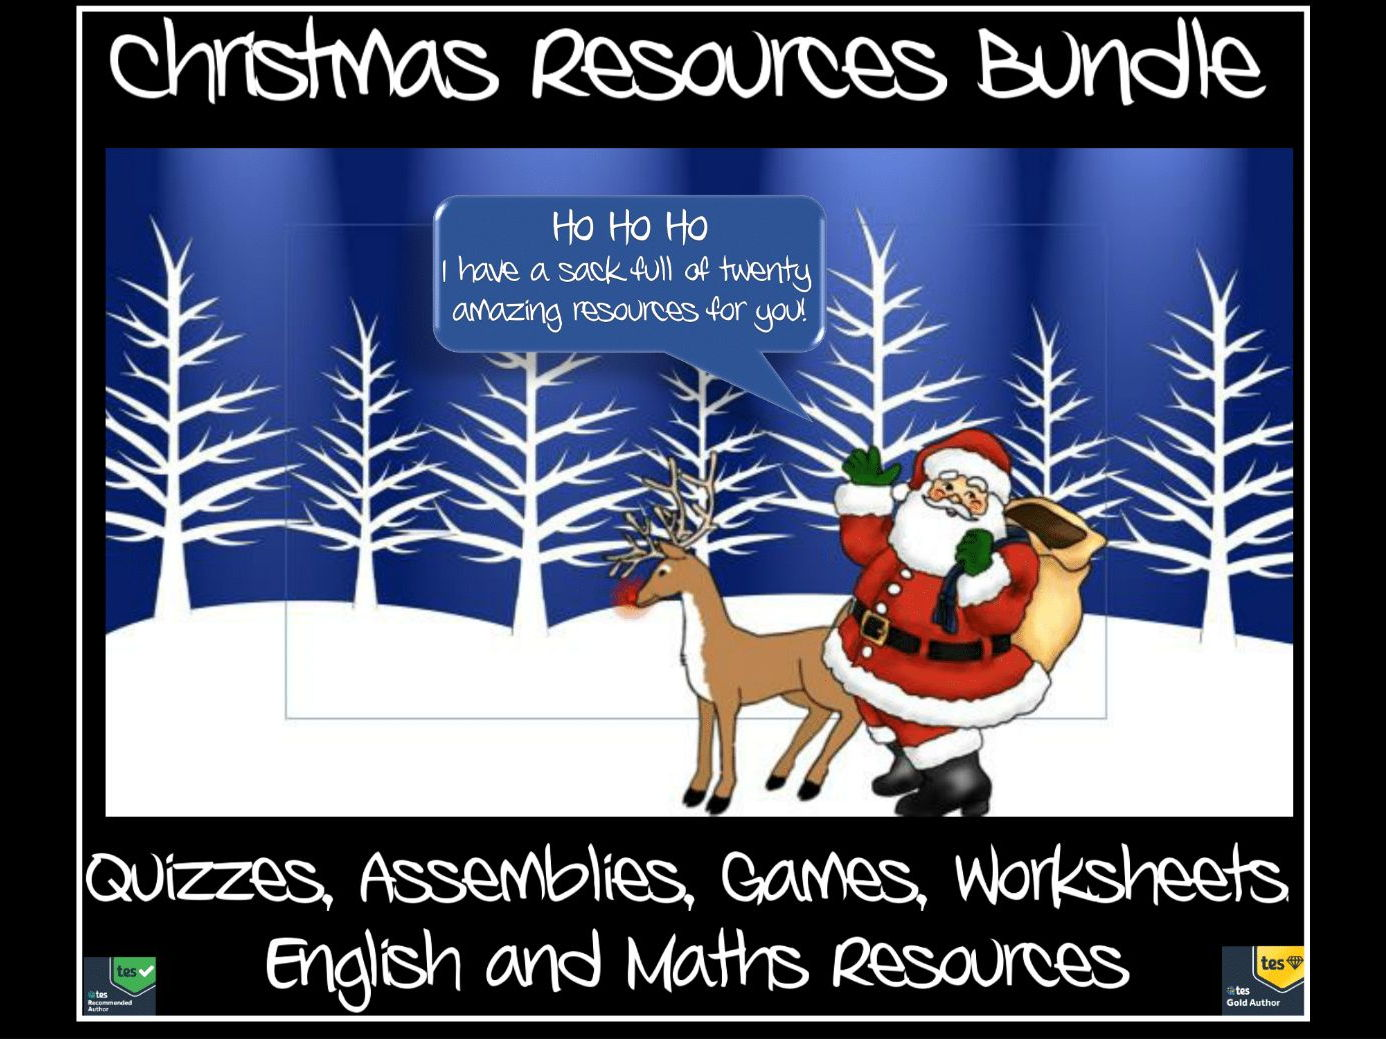 Christmas Resources Bundle - Twenty Resources - Just £9.99 - Quizzes, Games, Assemblies, Maths and English Resources